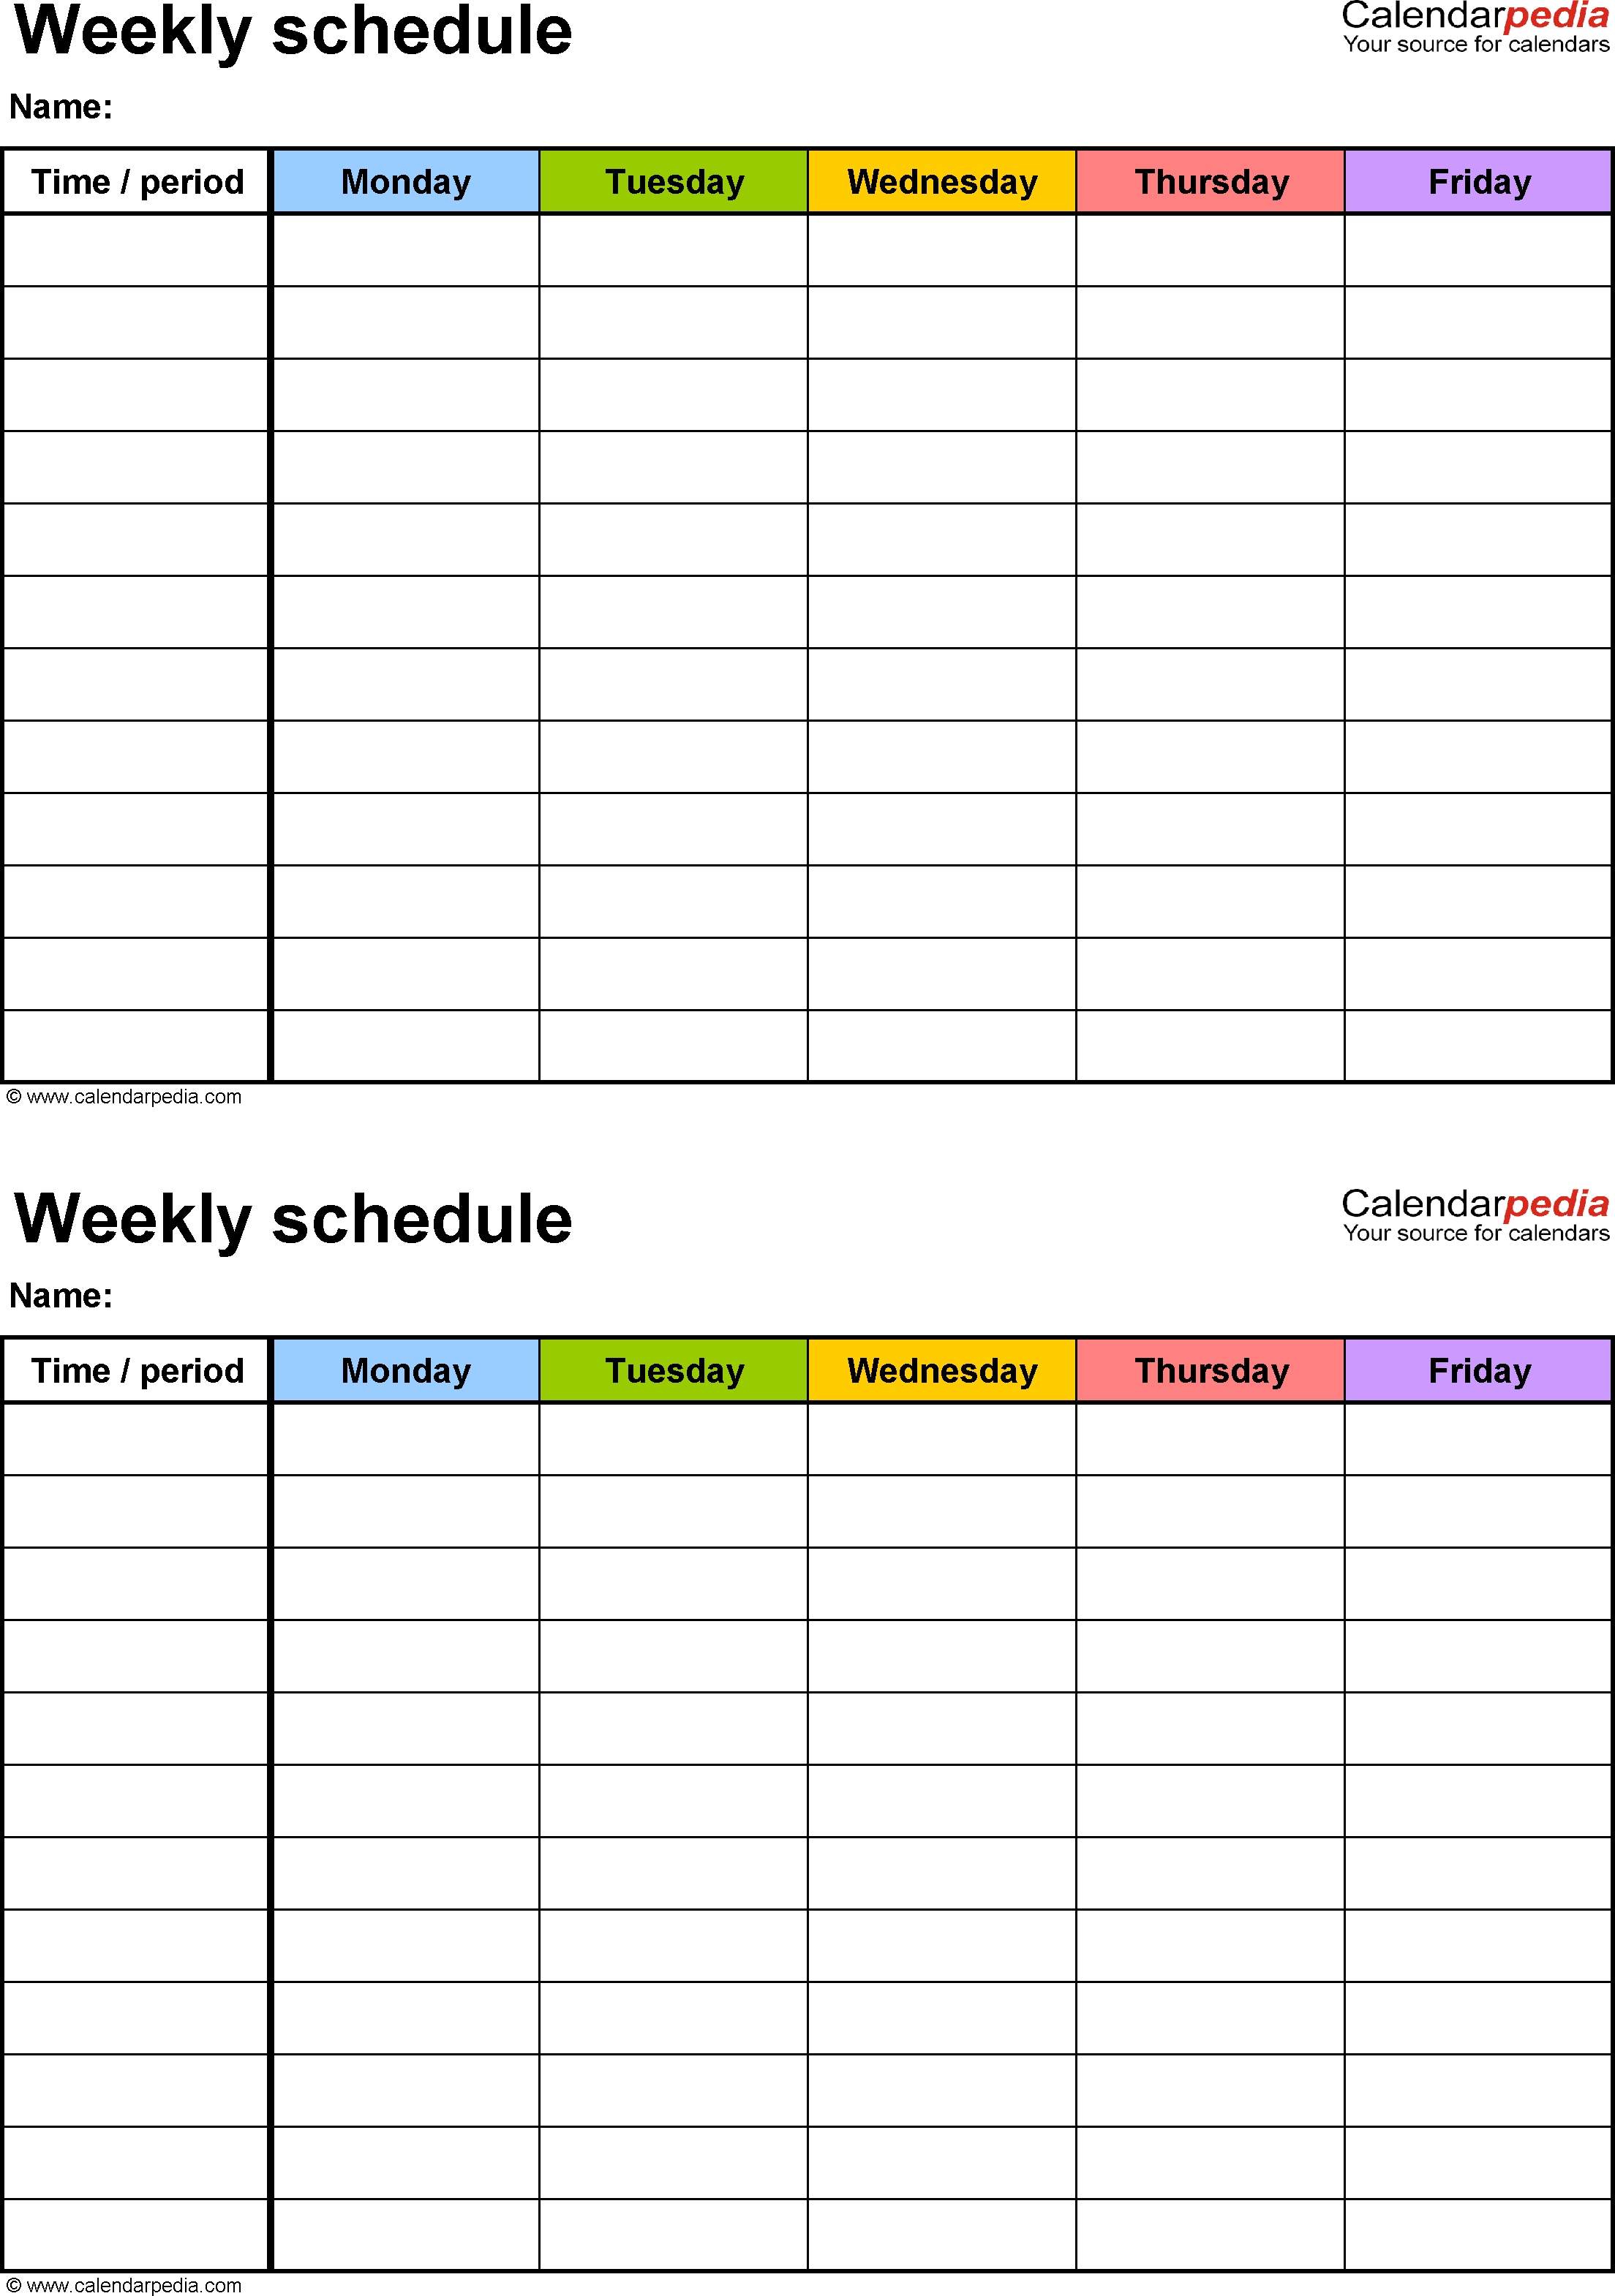 Free Weekly Schedule Templates For Word - 18 Templates pertaining to Free Printable Blank Weekly Schedule